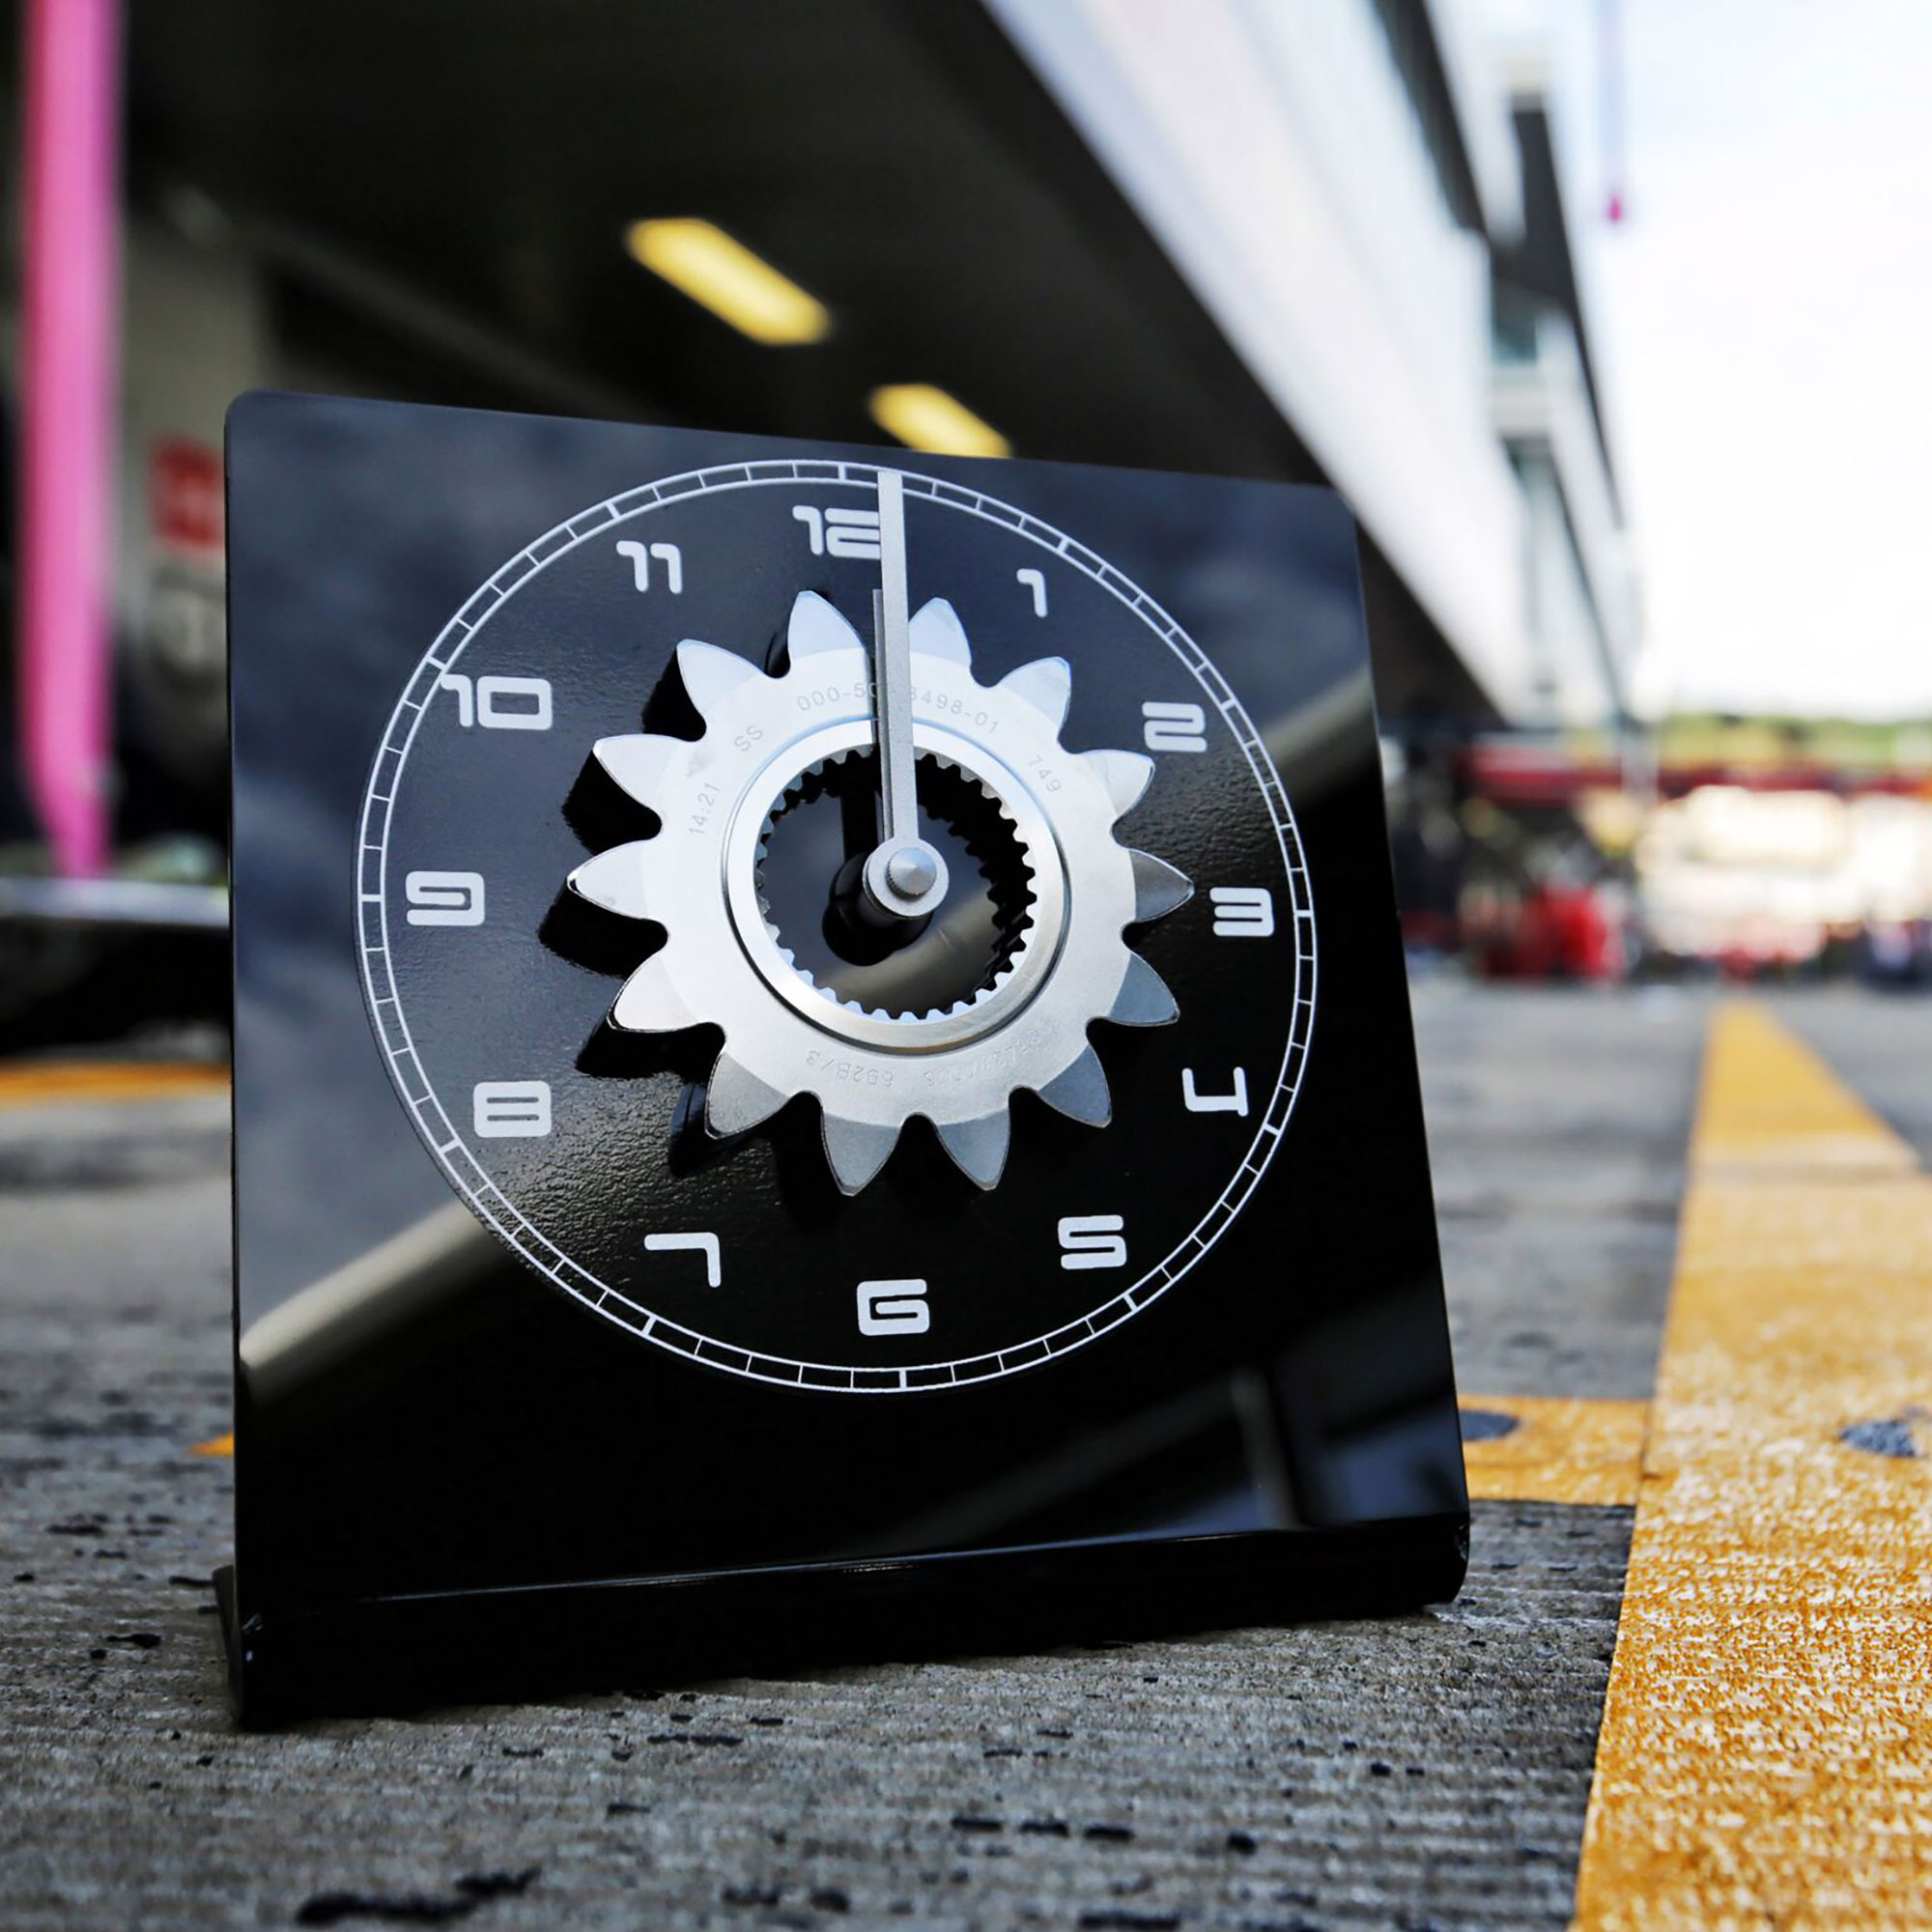 Lotus F1 Gear Ratio Clock